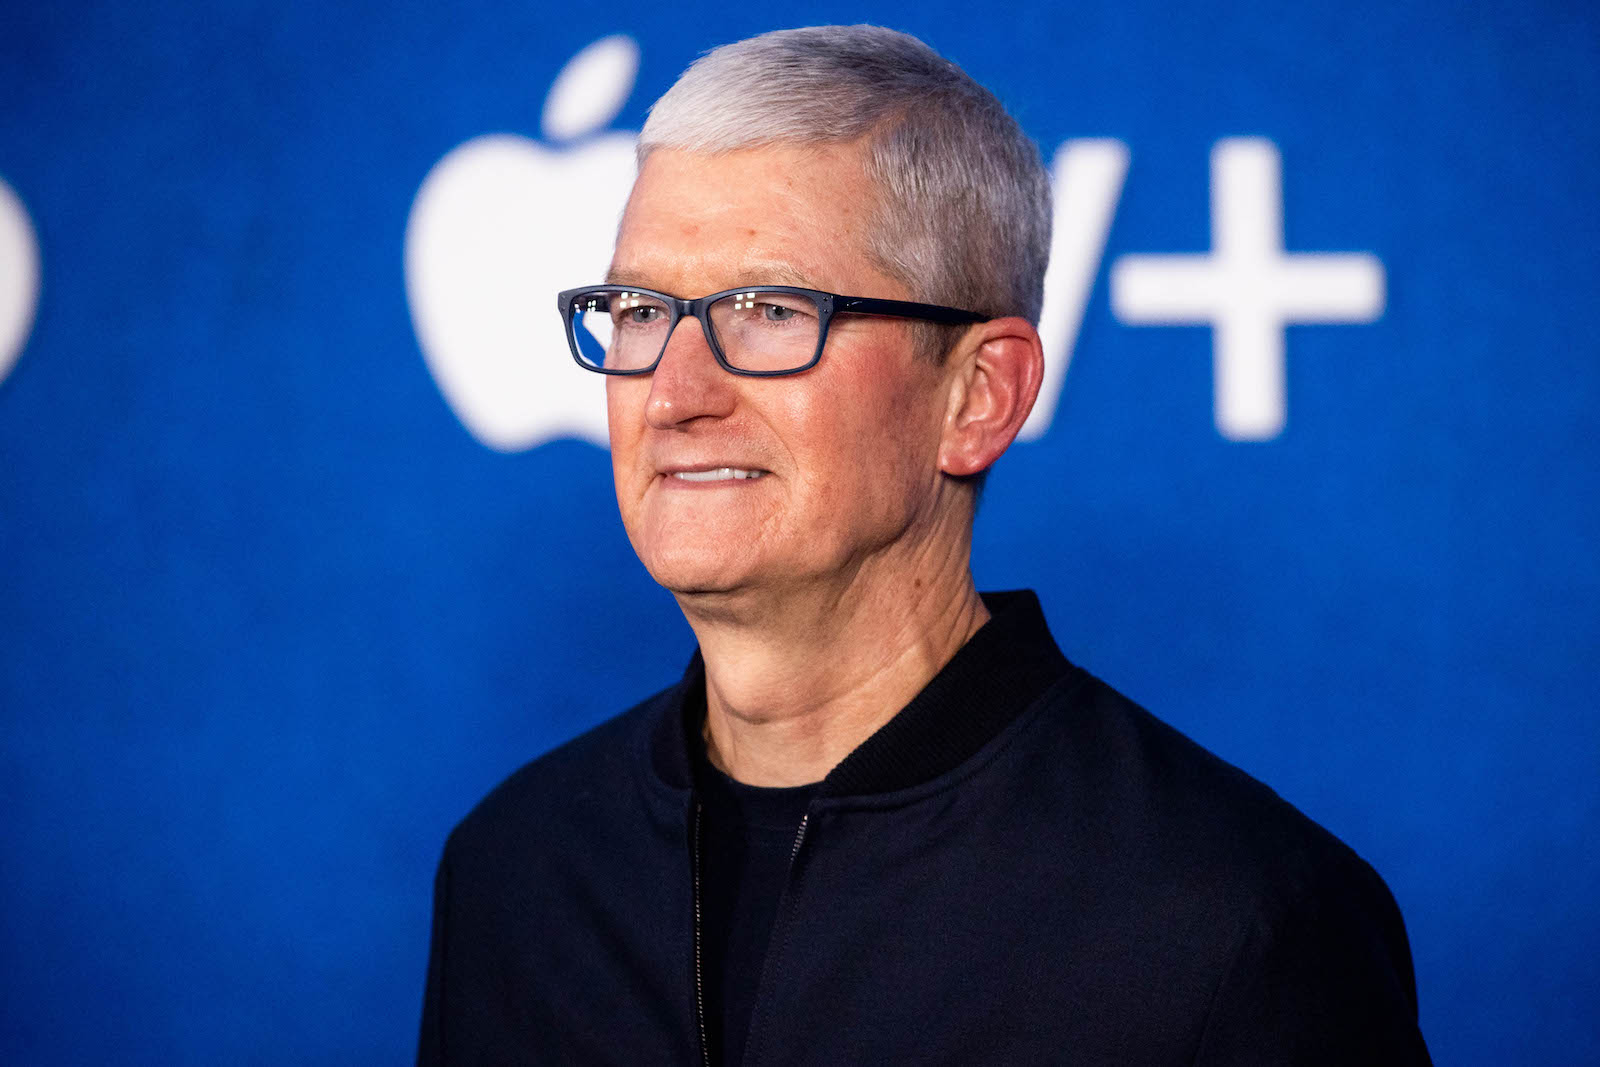 WEST HOLLYWOOD, CALIFORNIA-JULY 15: Apple CEO Tim Cook attends Apple's